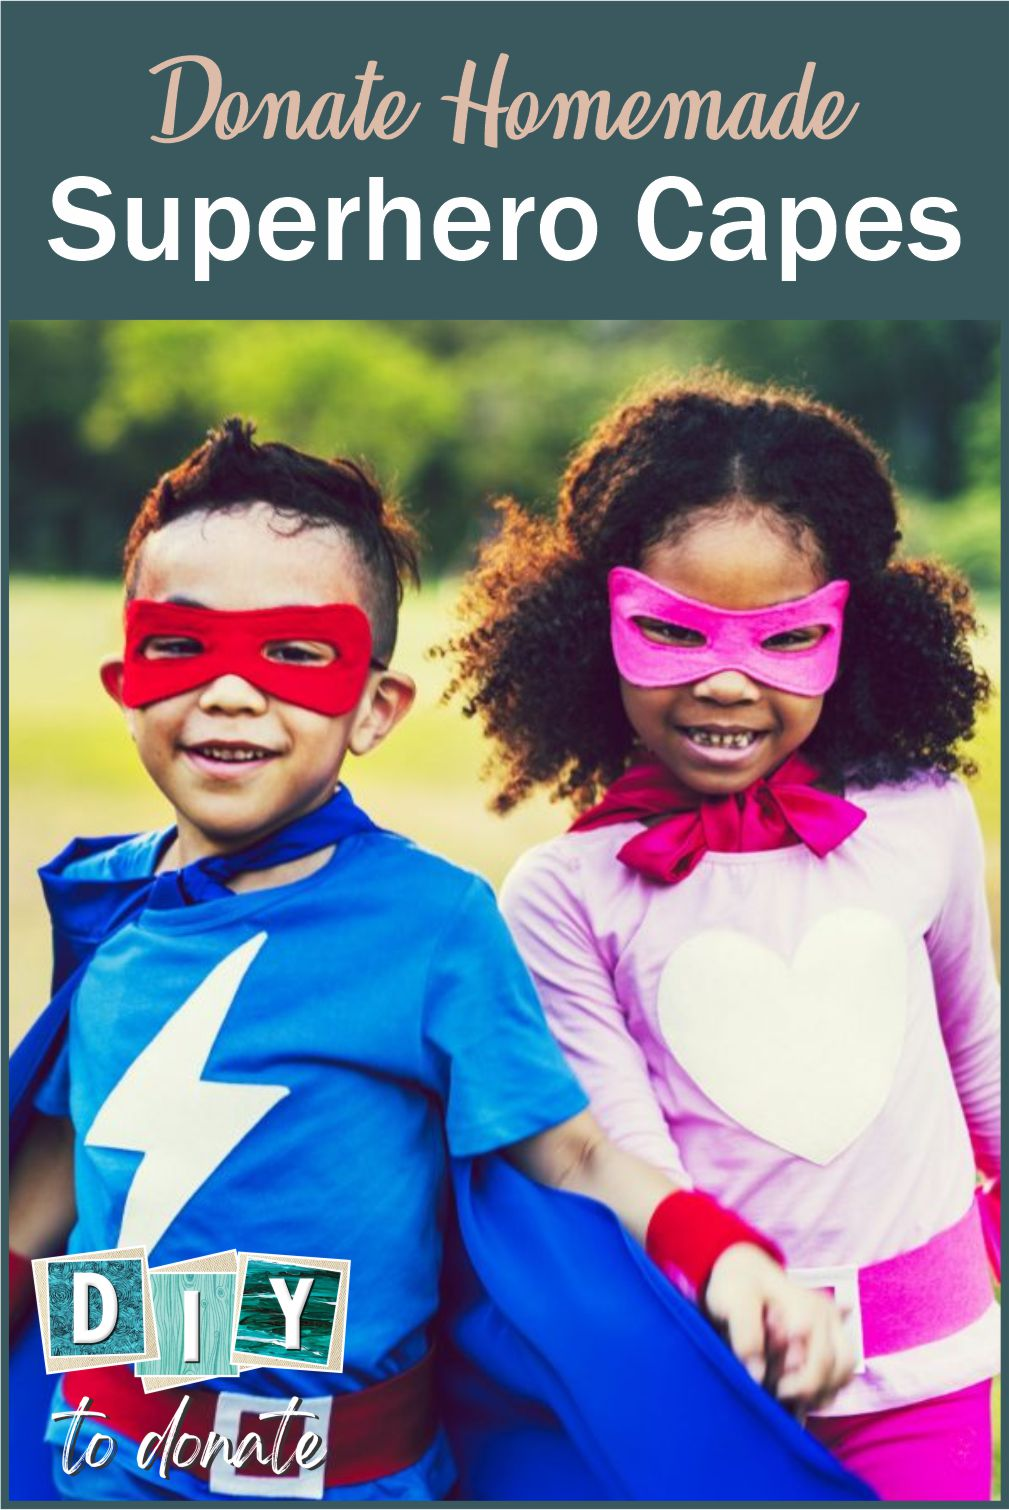 Find out how to make superhero capes for children and find out where you can donate them to make a difference in the lives of children. #diytodonate #superheros #superhero #capes #superherocapes #donate #giveback #children #makekidssmile #smile #makeadifference